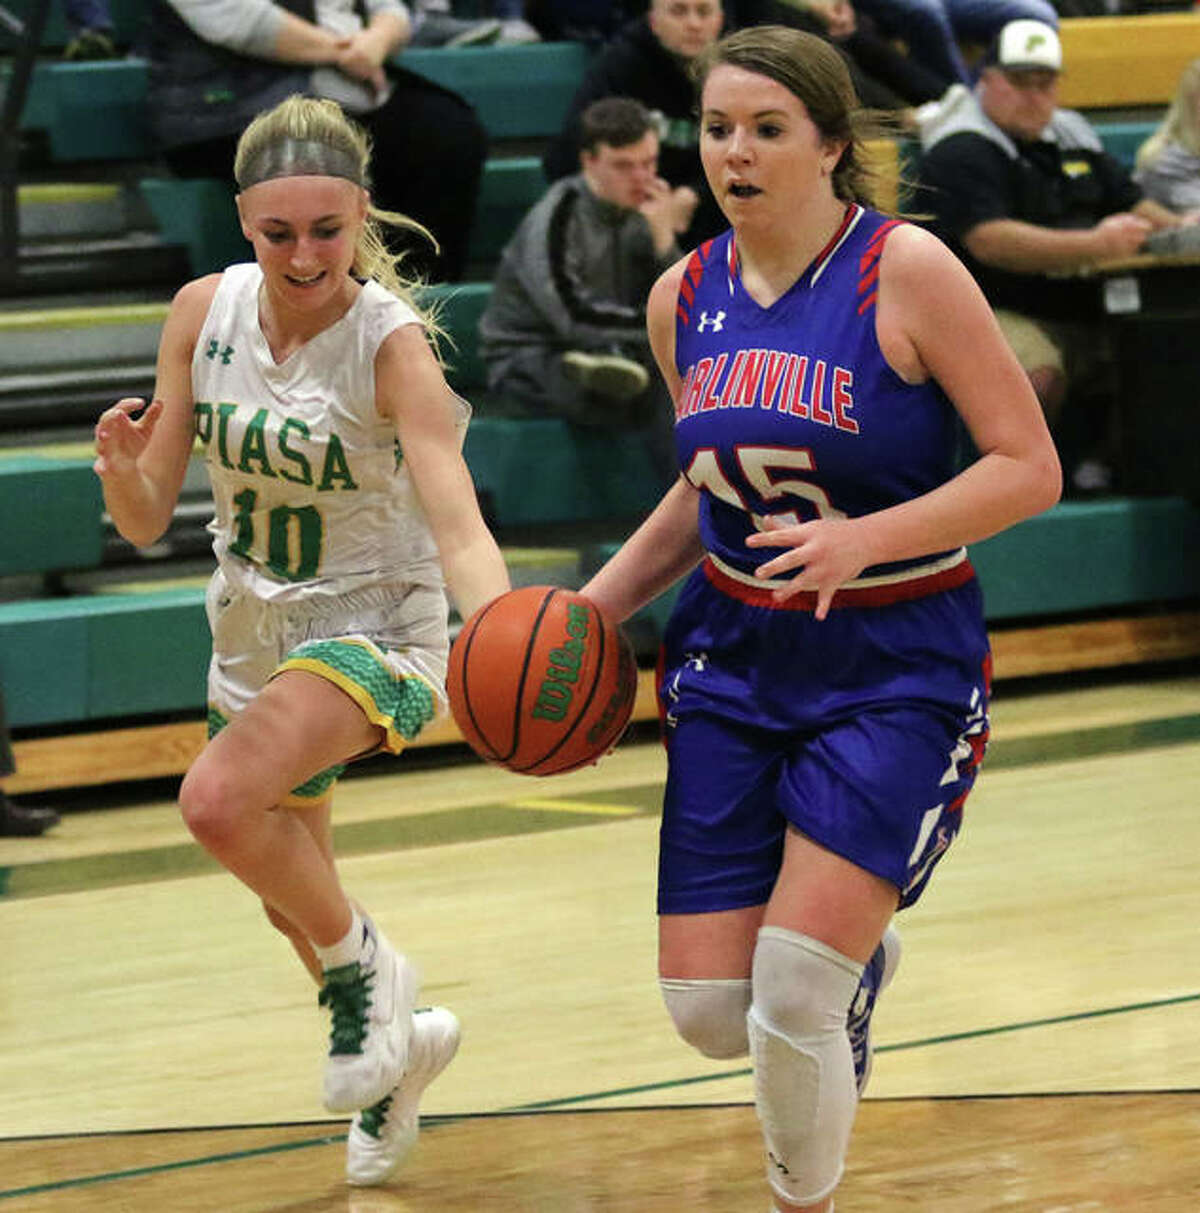 Southwestern's Morgan Durham (left) knocks the ball away from and off of Carlinville's Gracie Reels to force a turnover on a fastbreak in the first half of a South Central Conference girls basketball game Thursday night in Piasa.